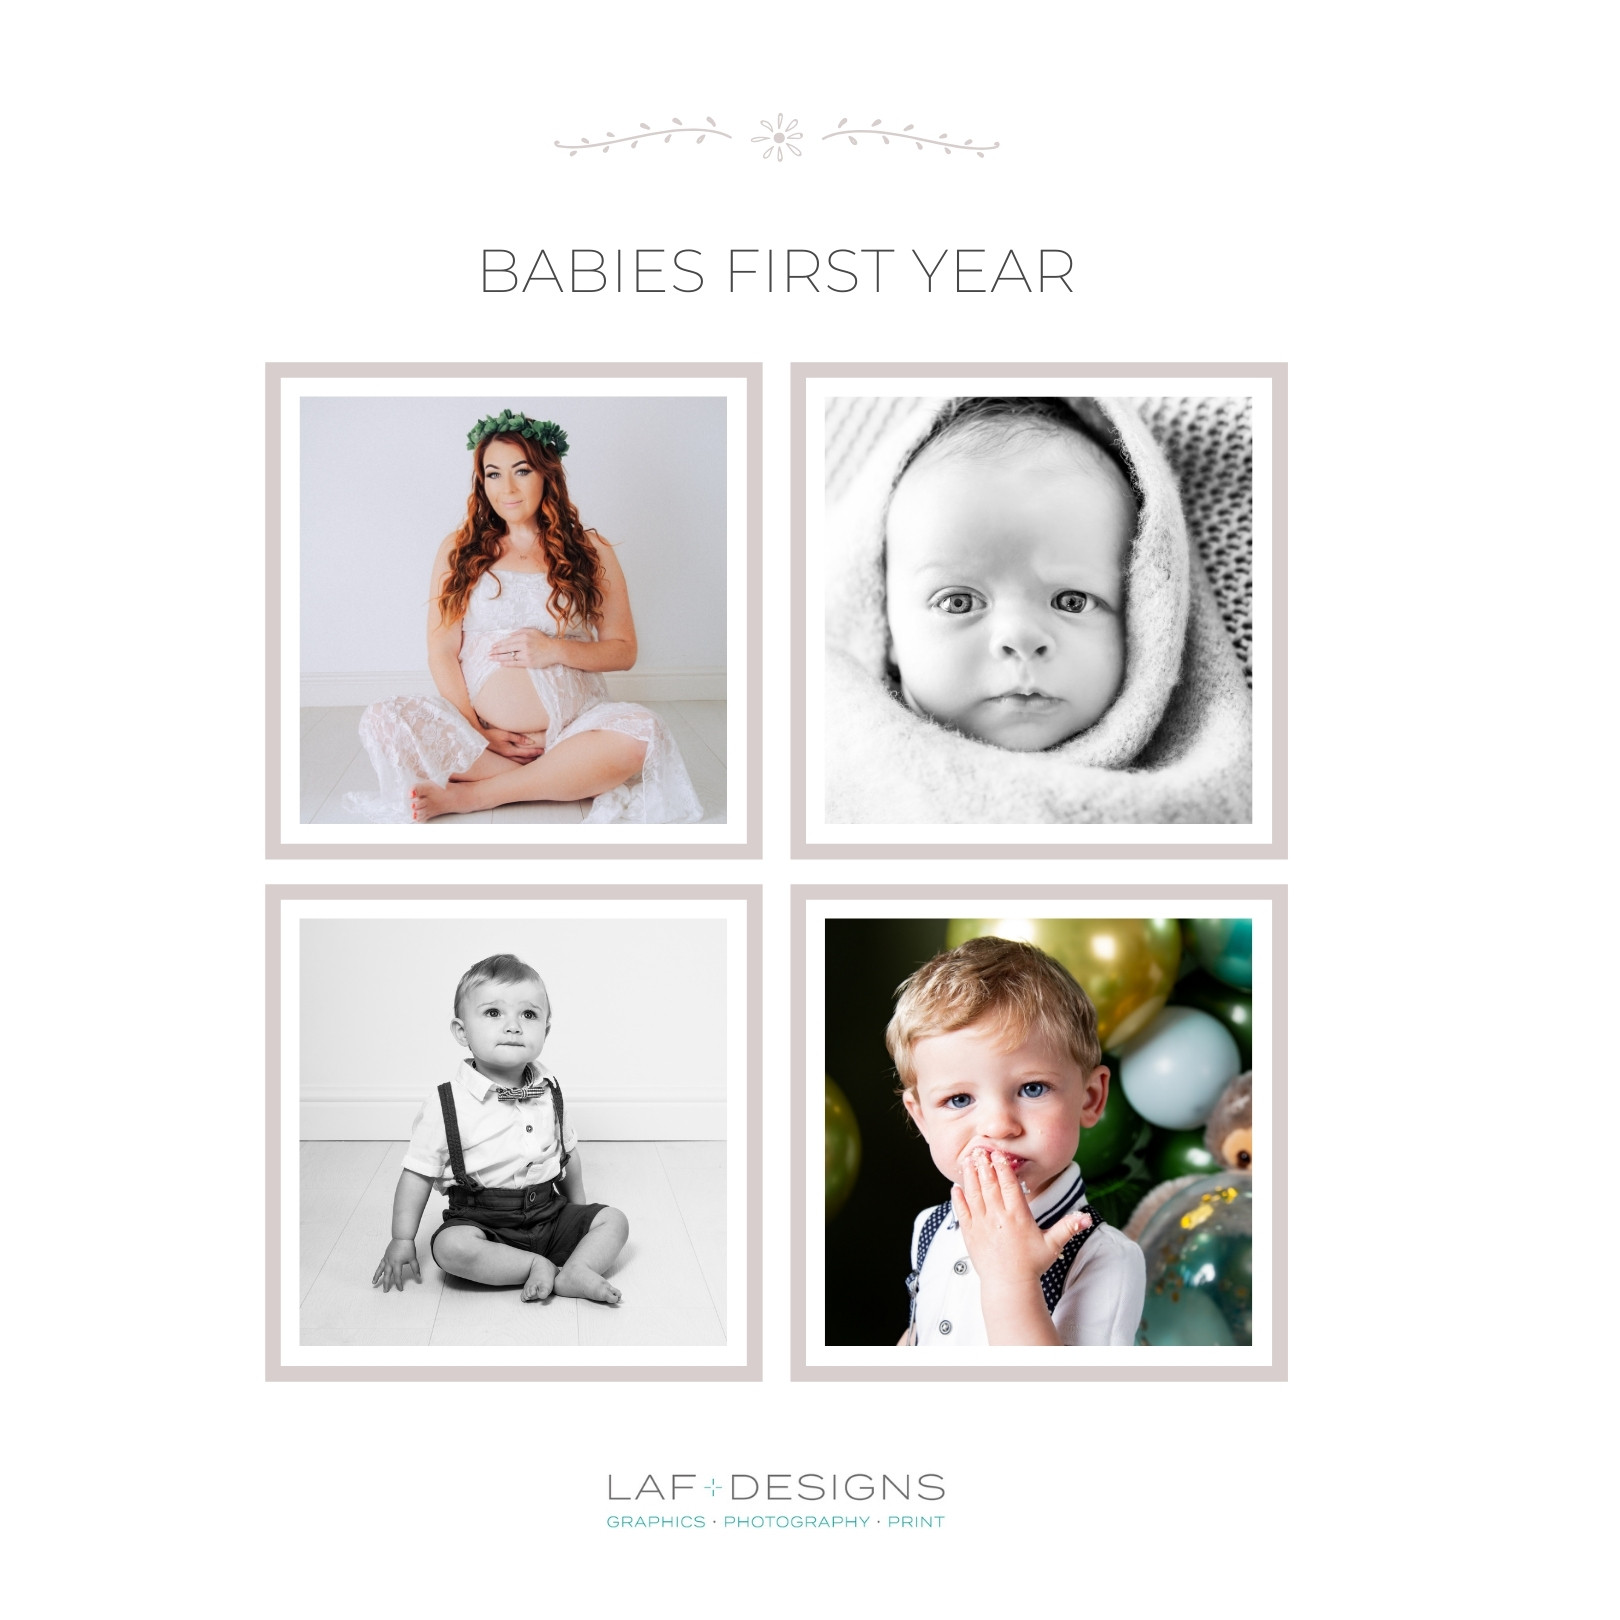 Babies First Year